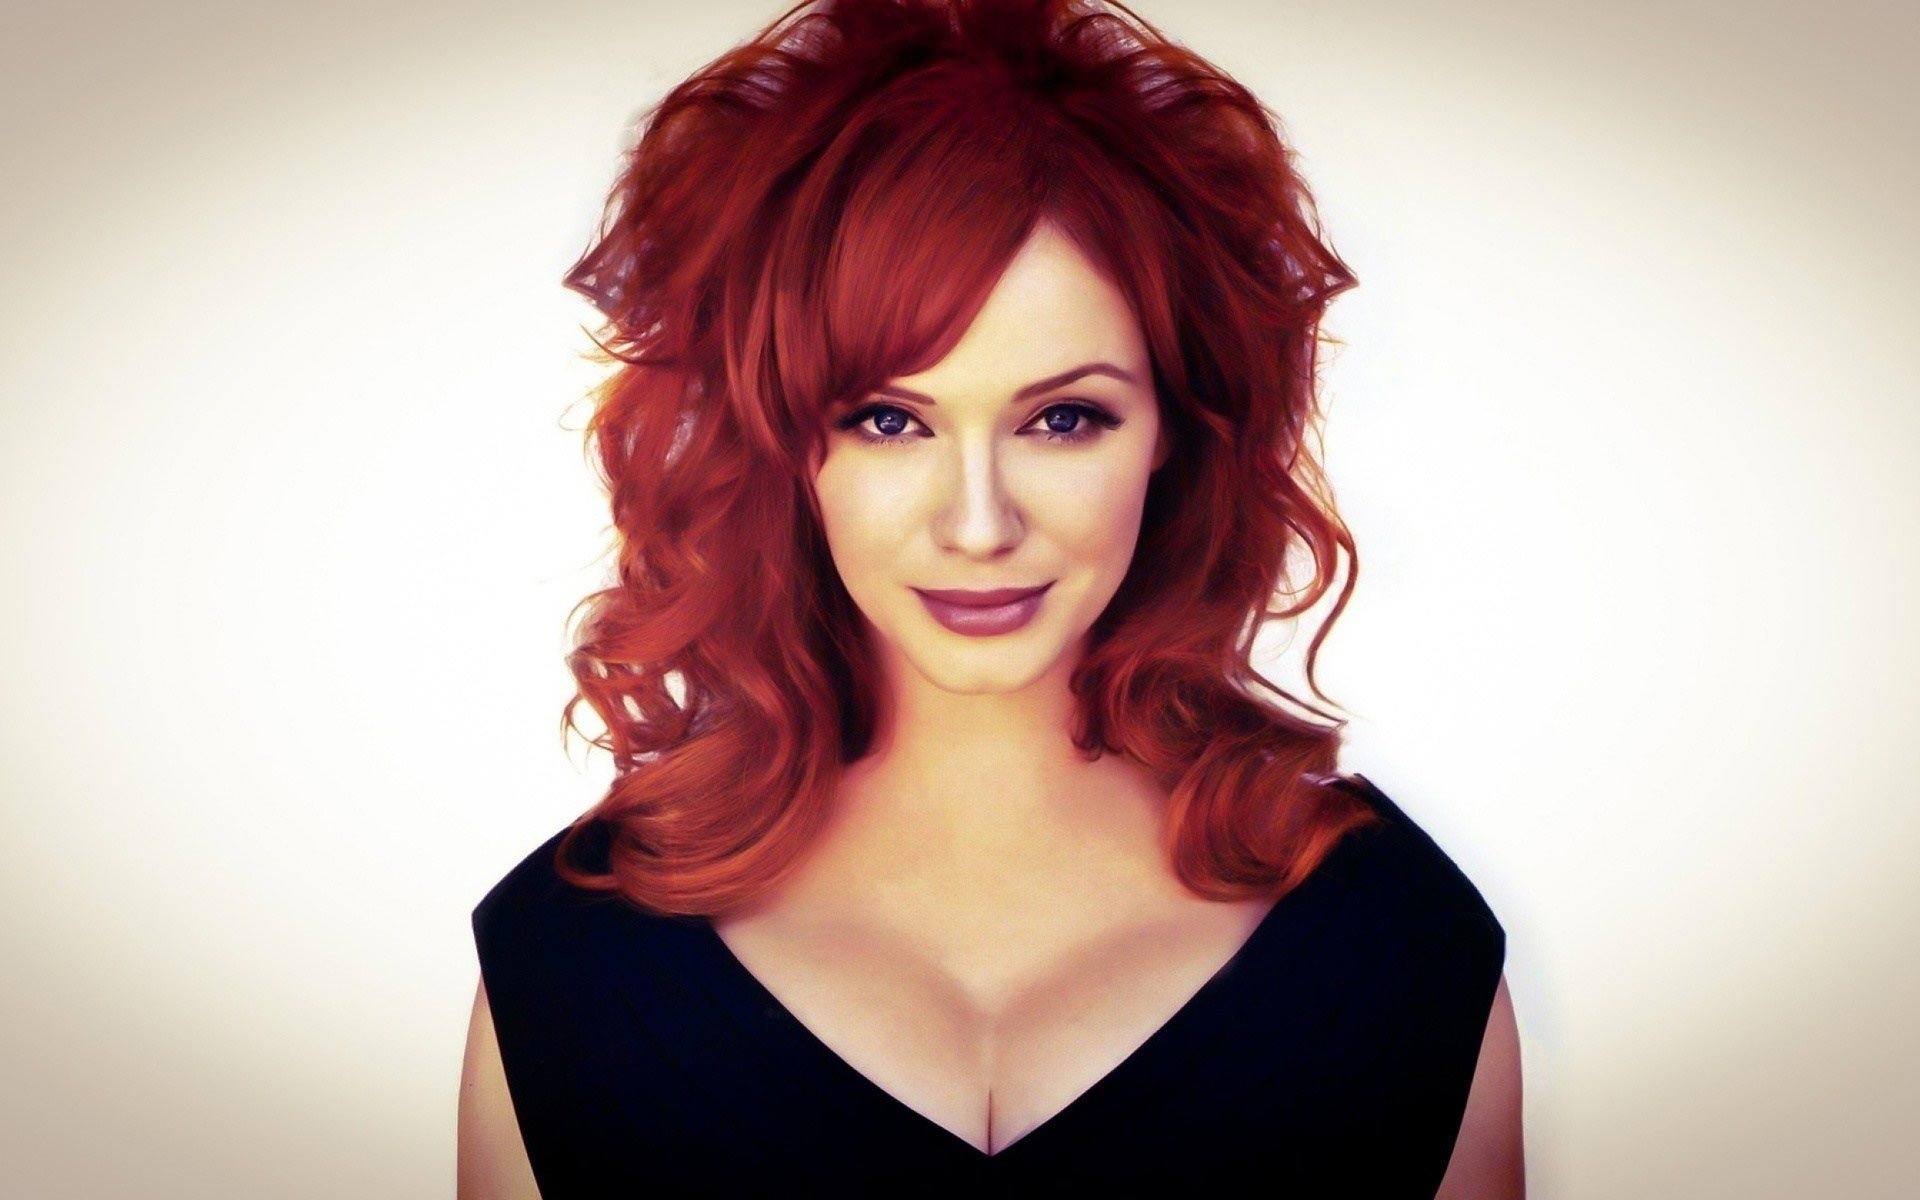 6944494-beauty-redhead-christina-hendricks-american-actress_1230